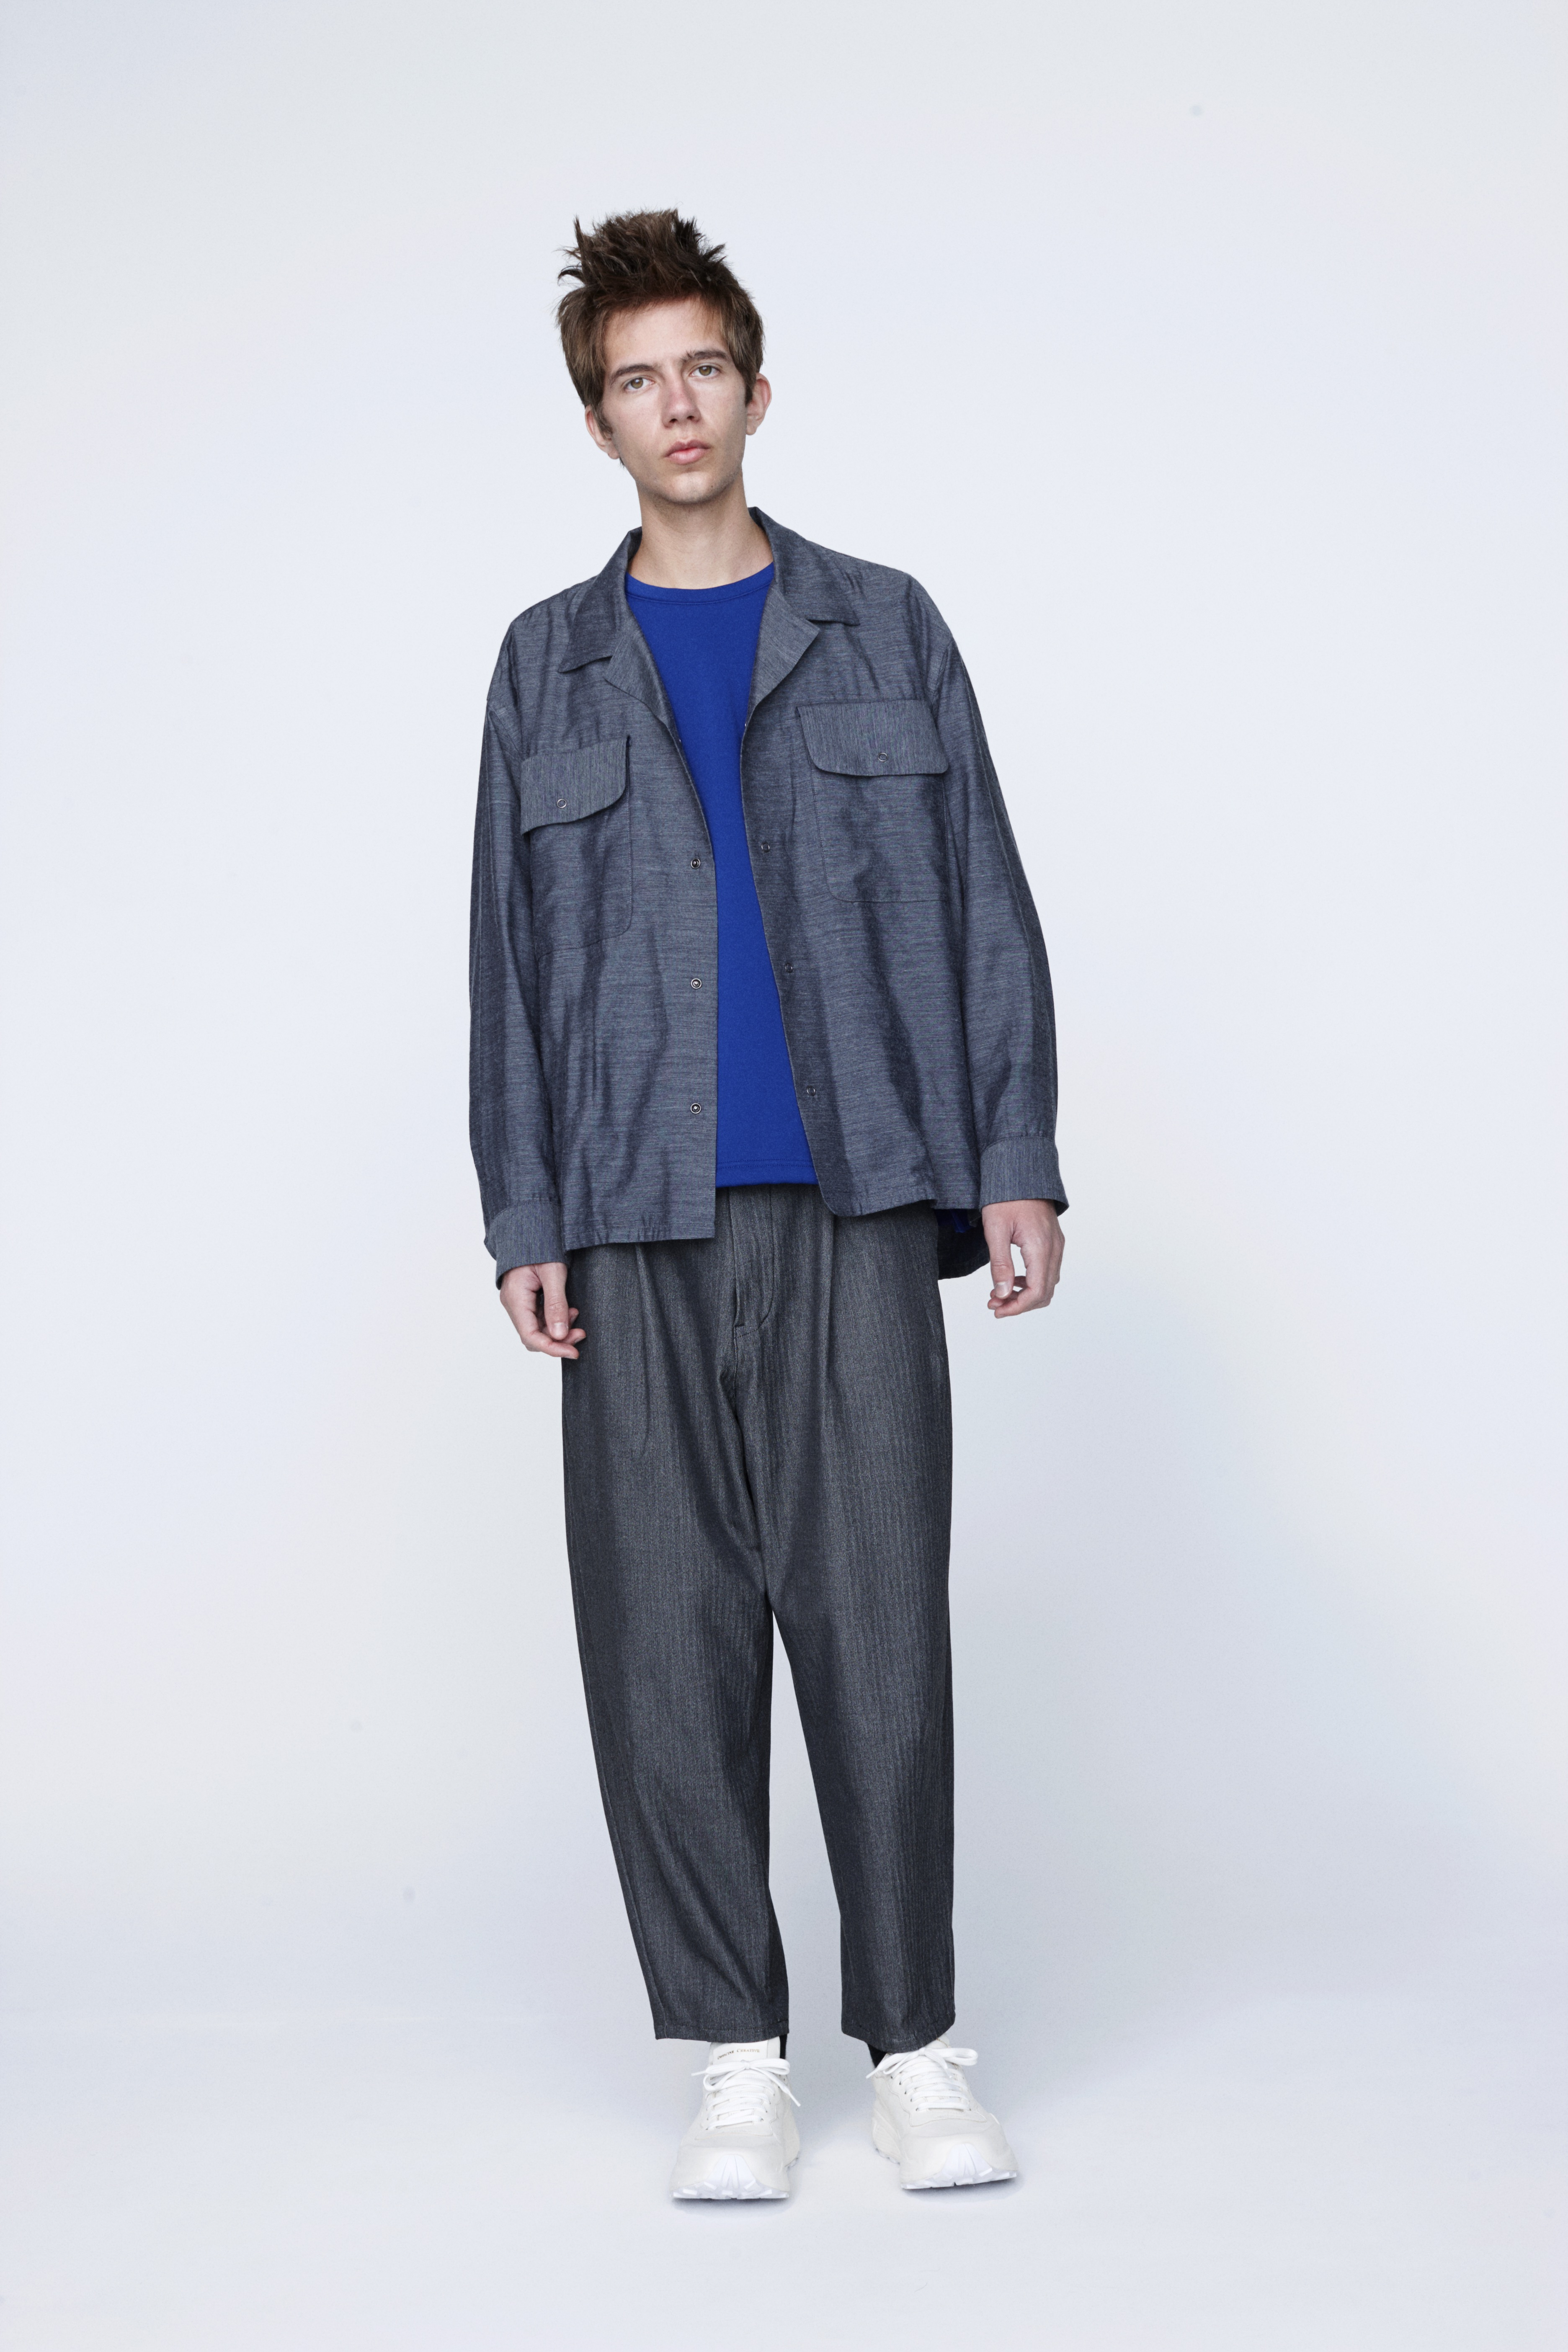 JOHNBULL 2019 FALL WINTER -BASQUE TRADITIONALISTS- アイテム